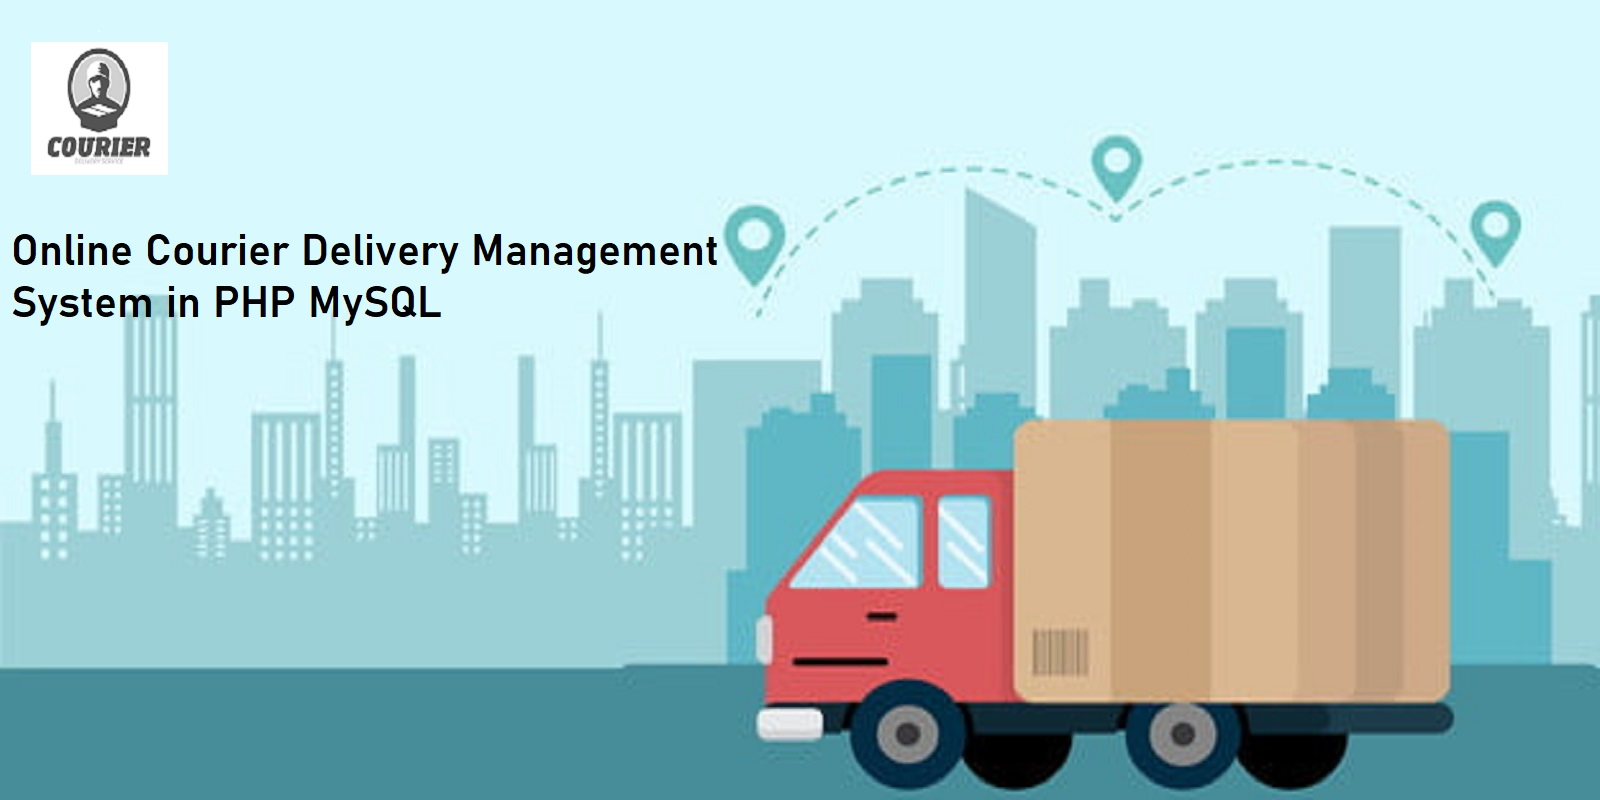 Online Courier Delivery Management System in PHP MySQL